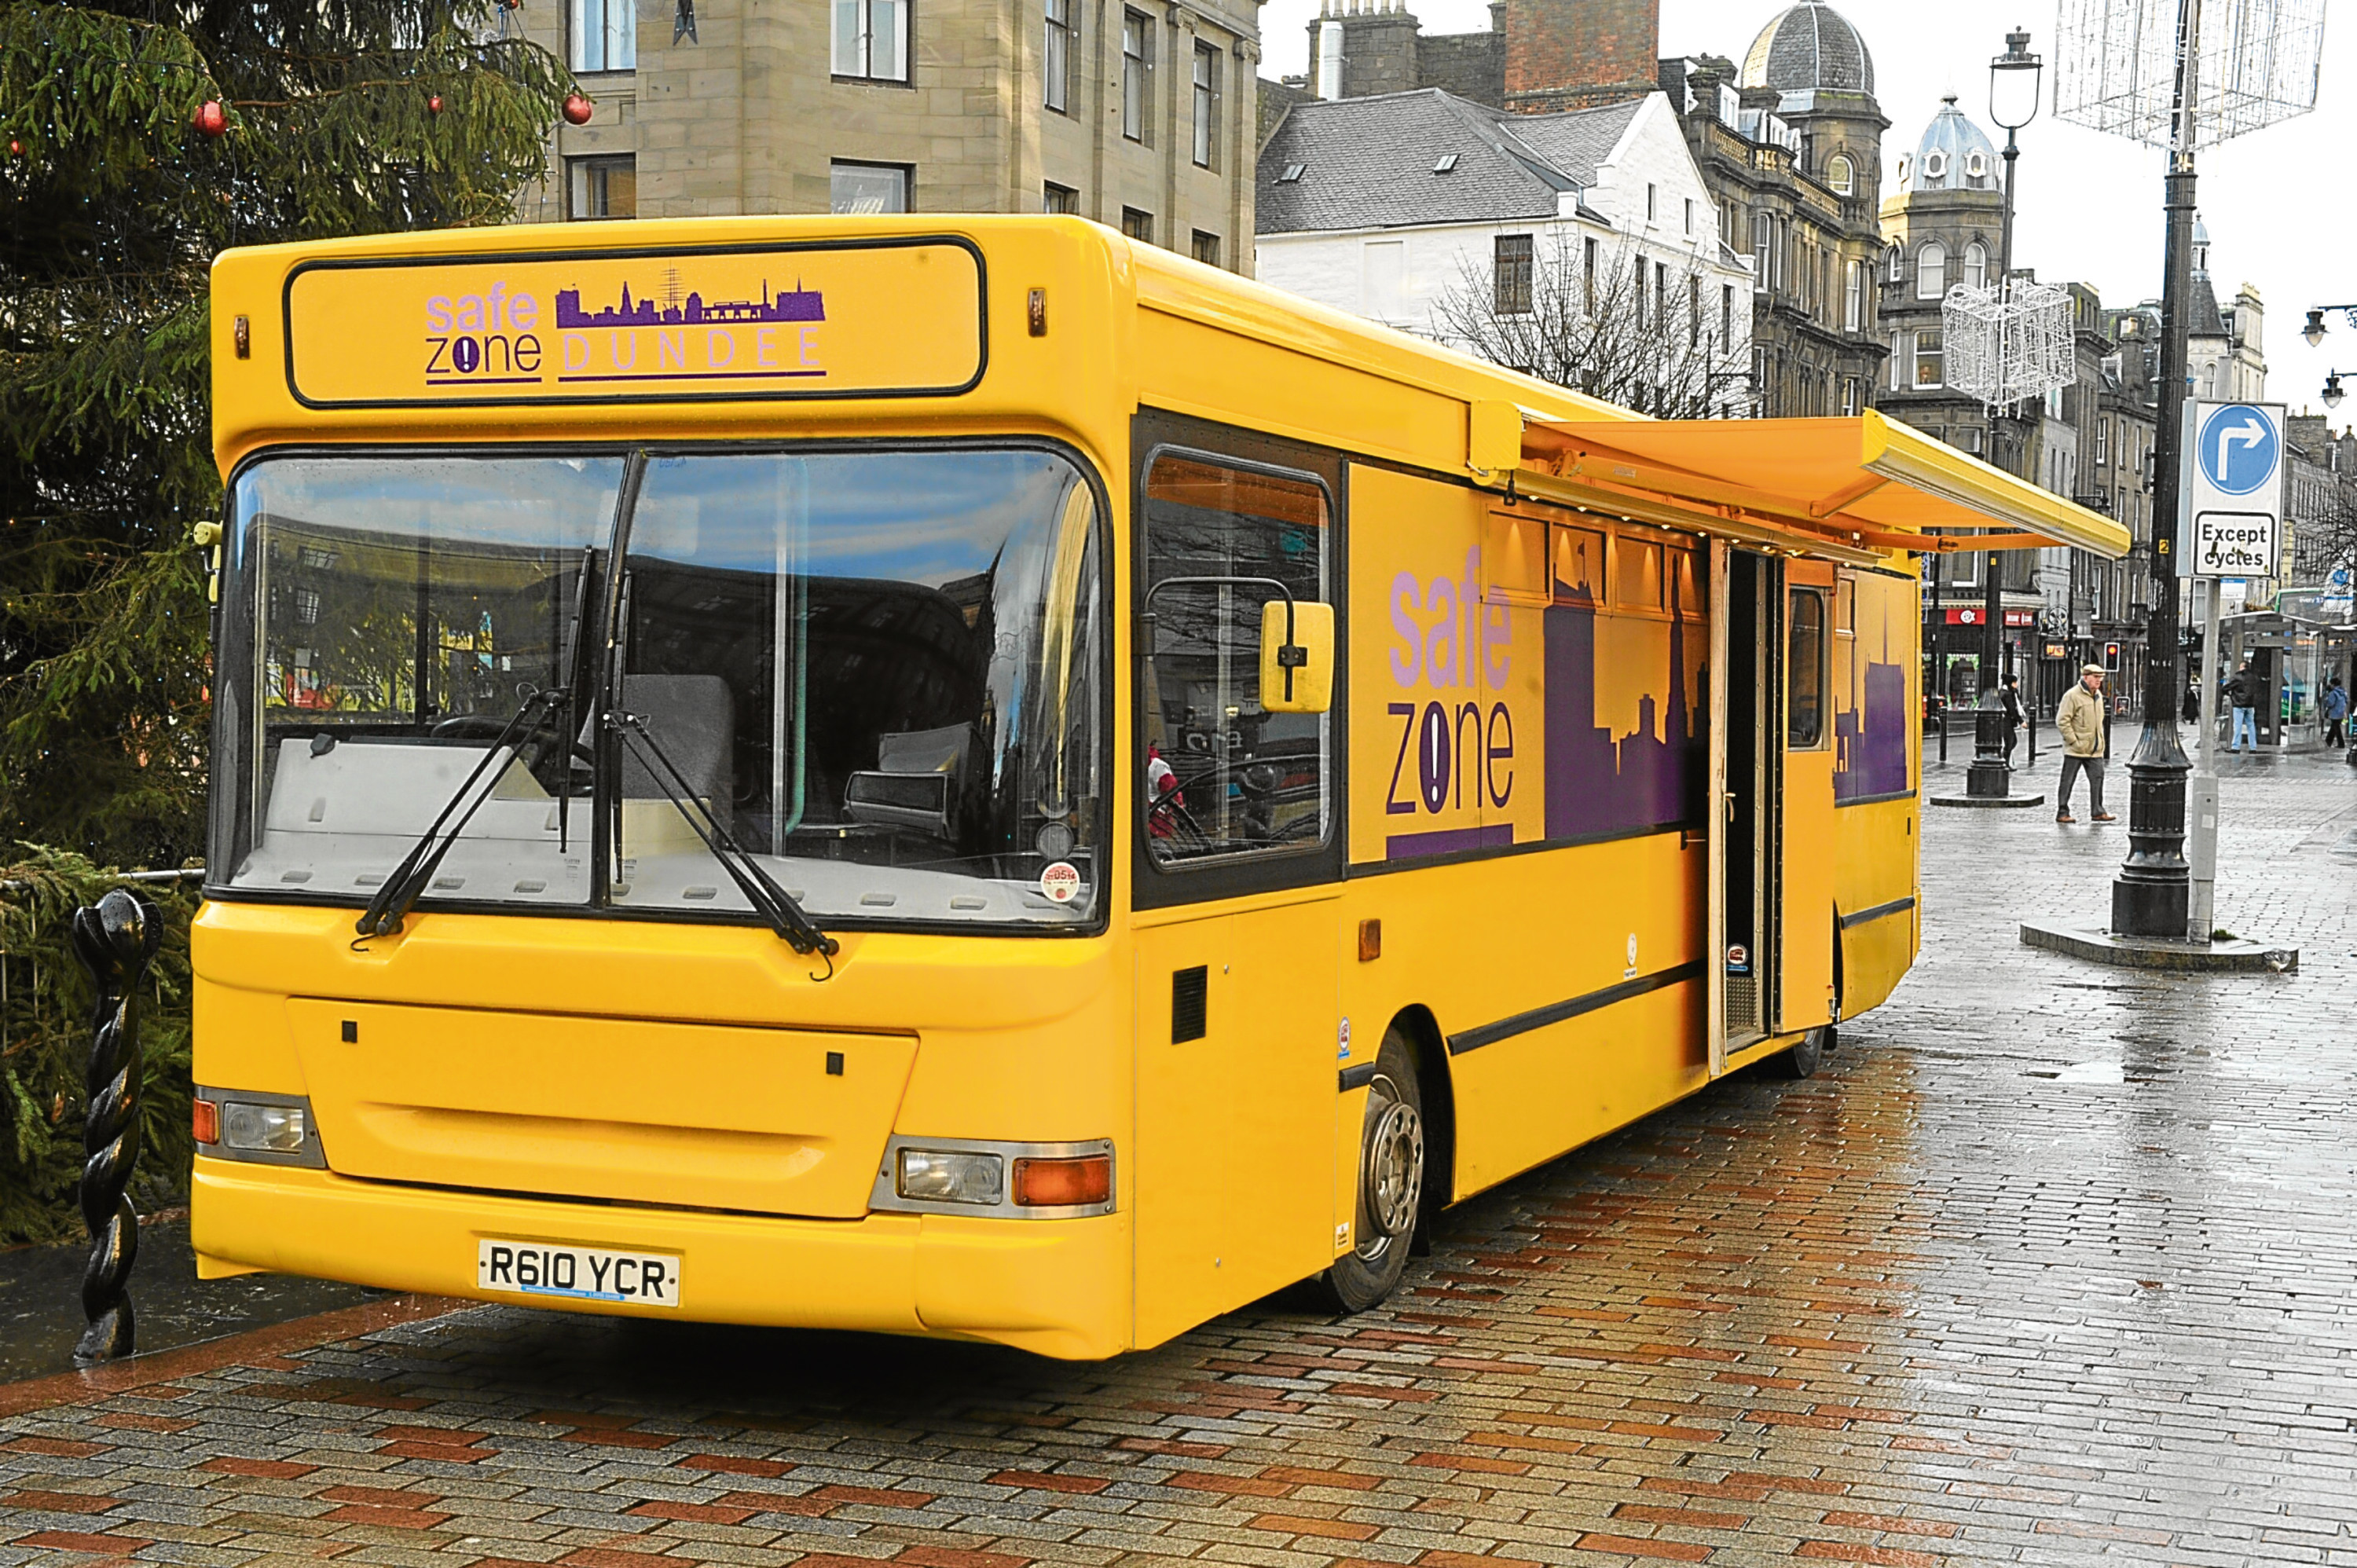 The Safe Zone Bus